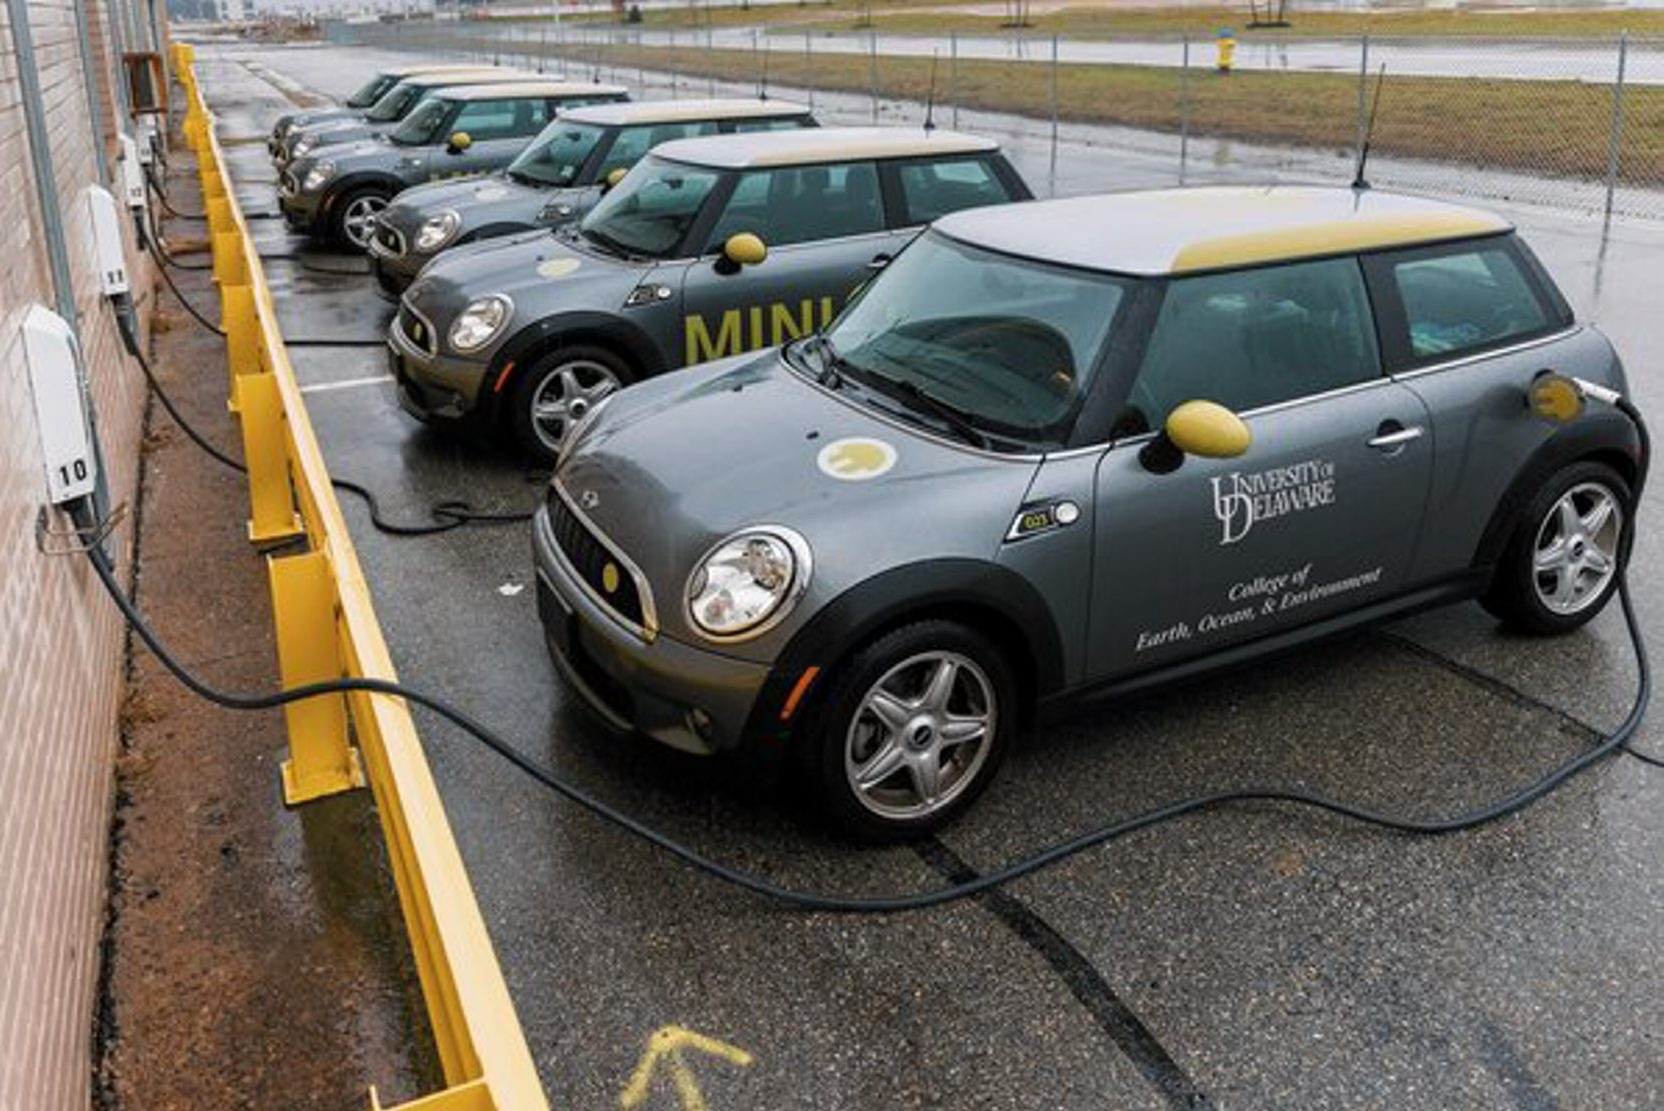 Vehicle to Grid (V2G) cars parked at the University of Delaware are pumping electricity back into the power grid.